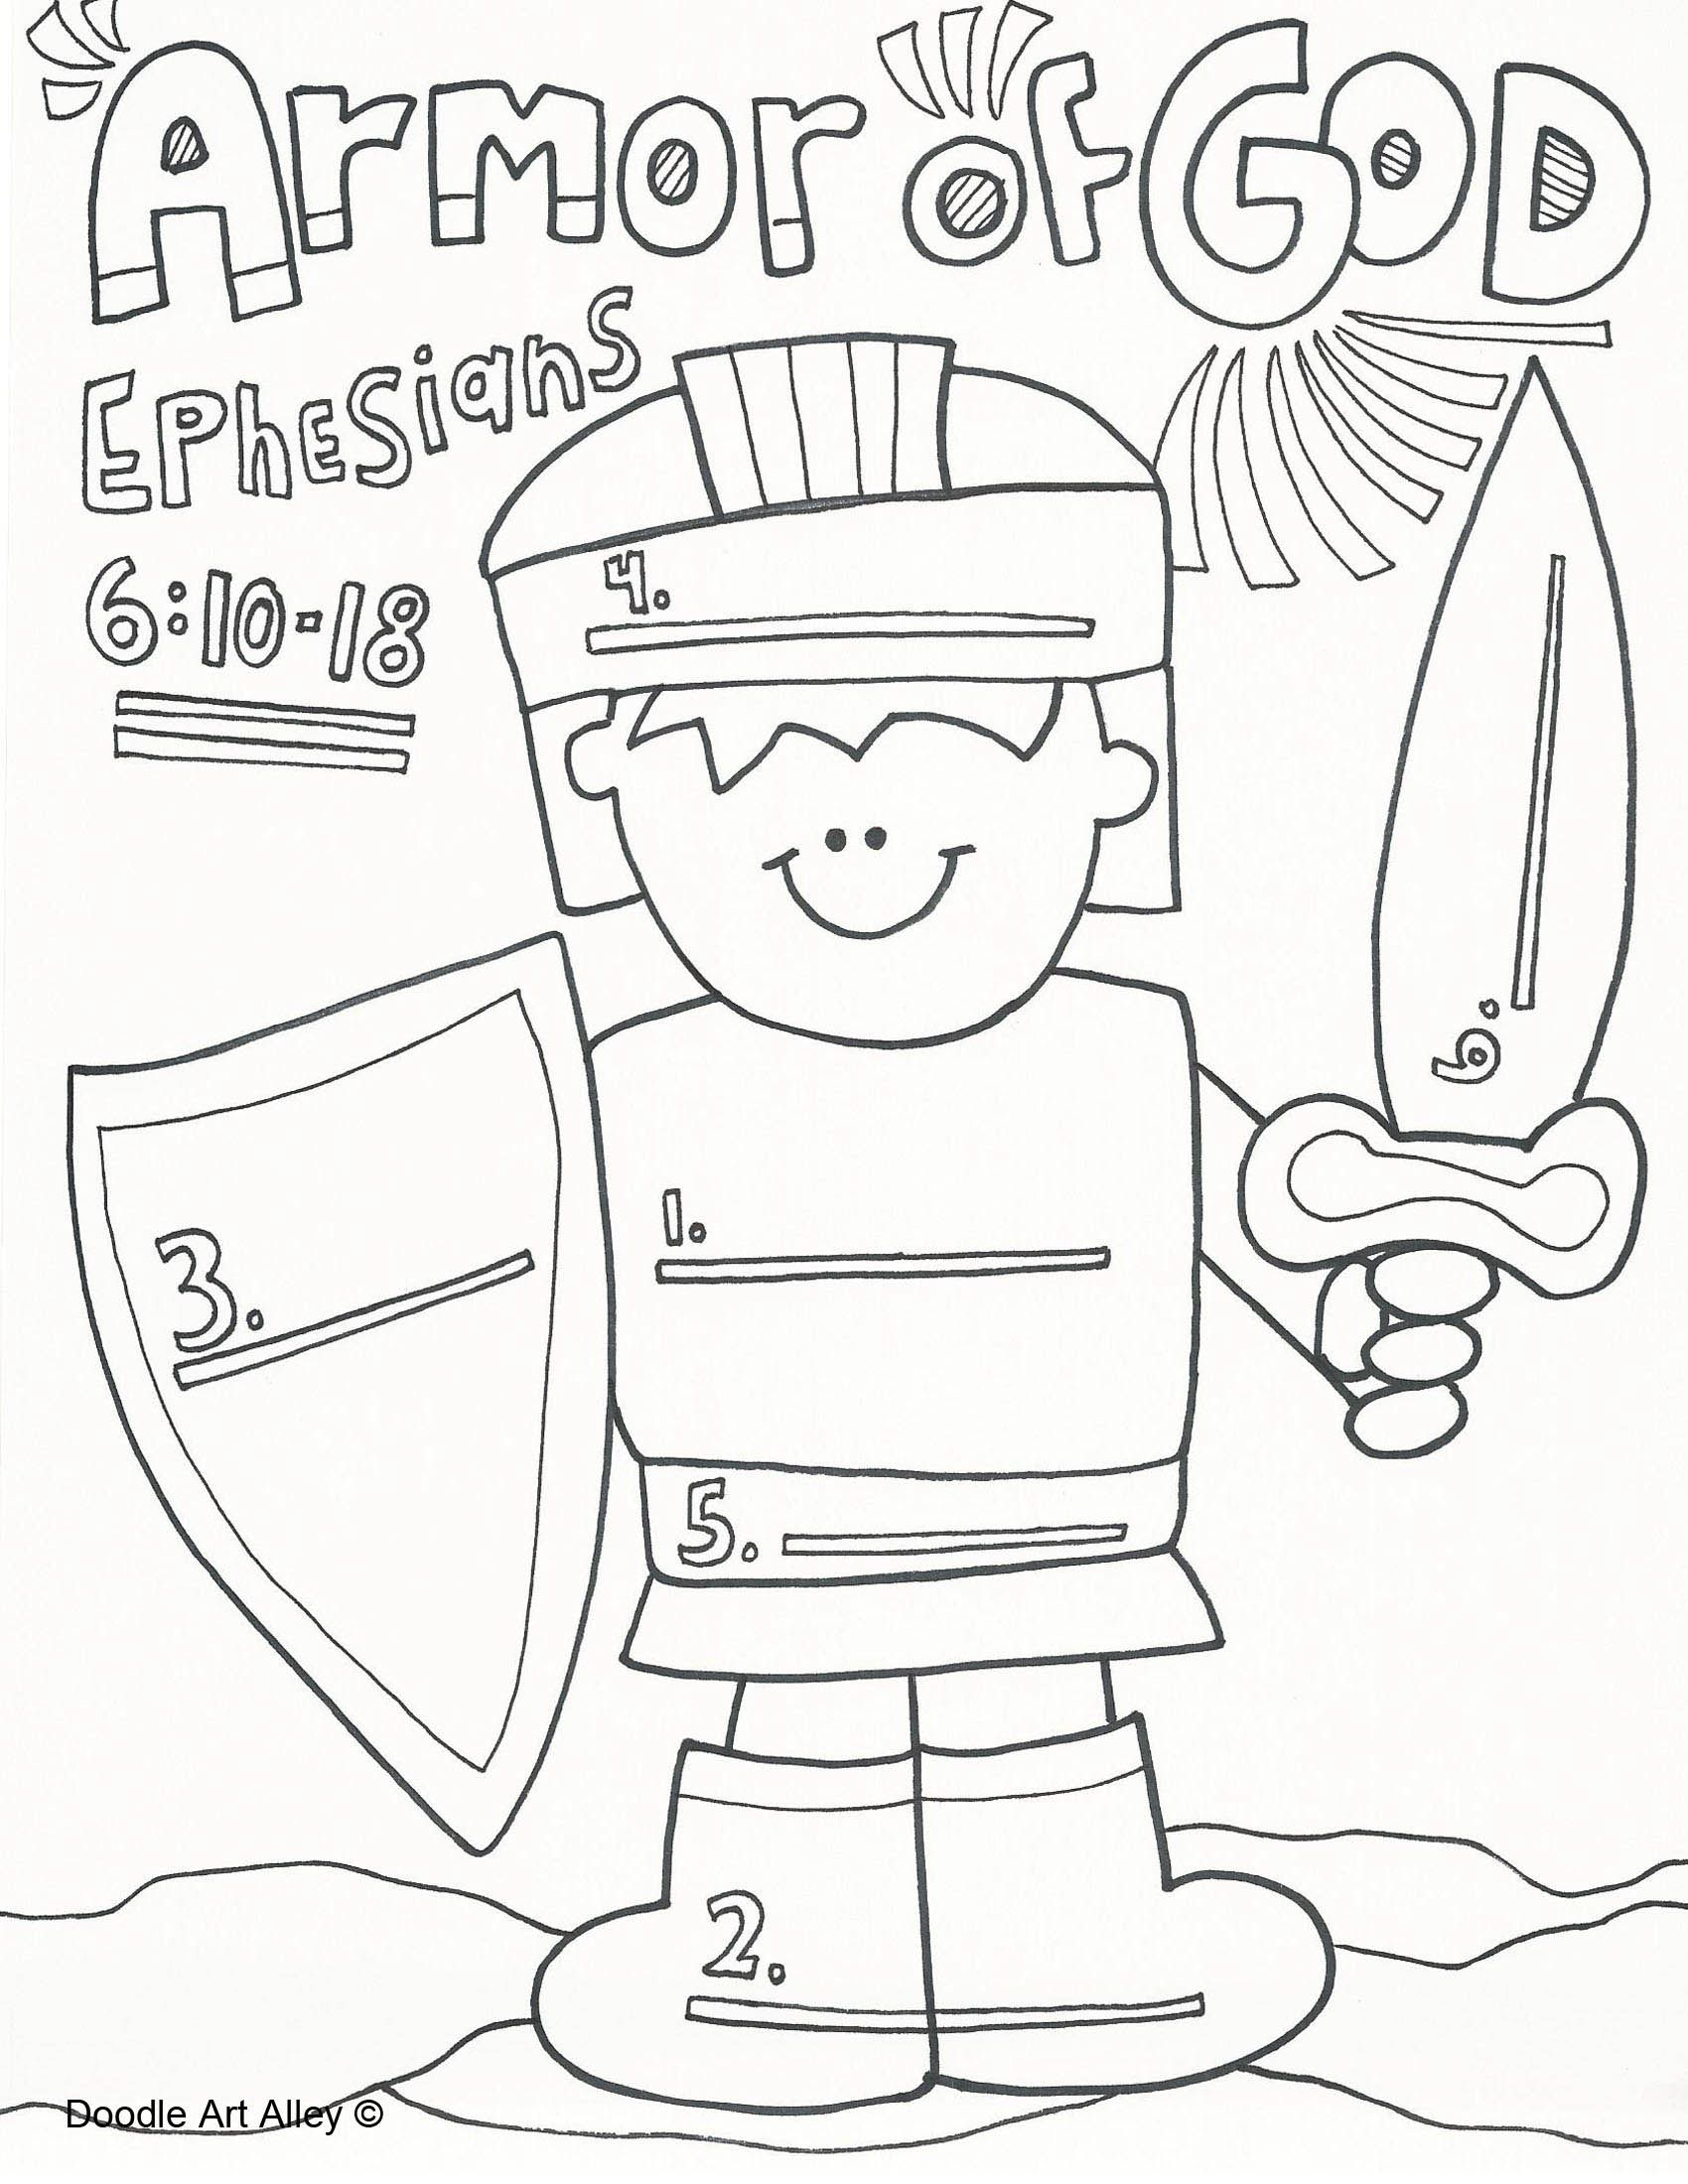 The Christmas Angel blog- teaching the armor of God